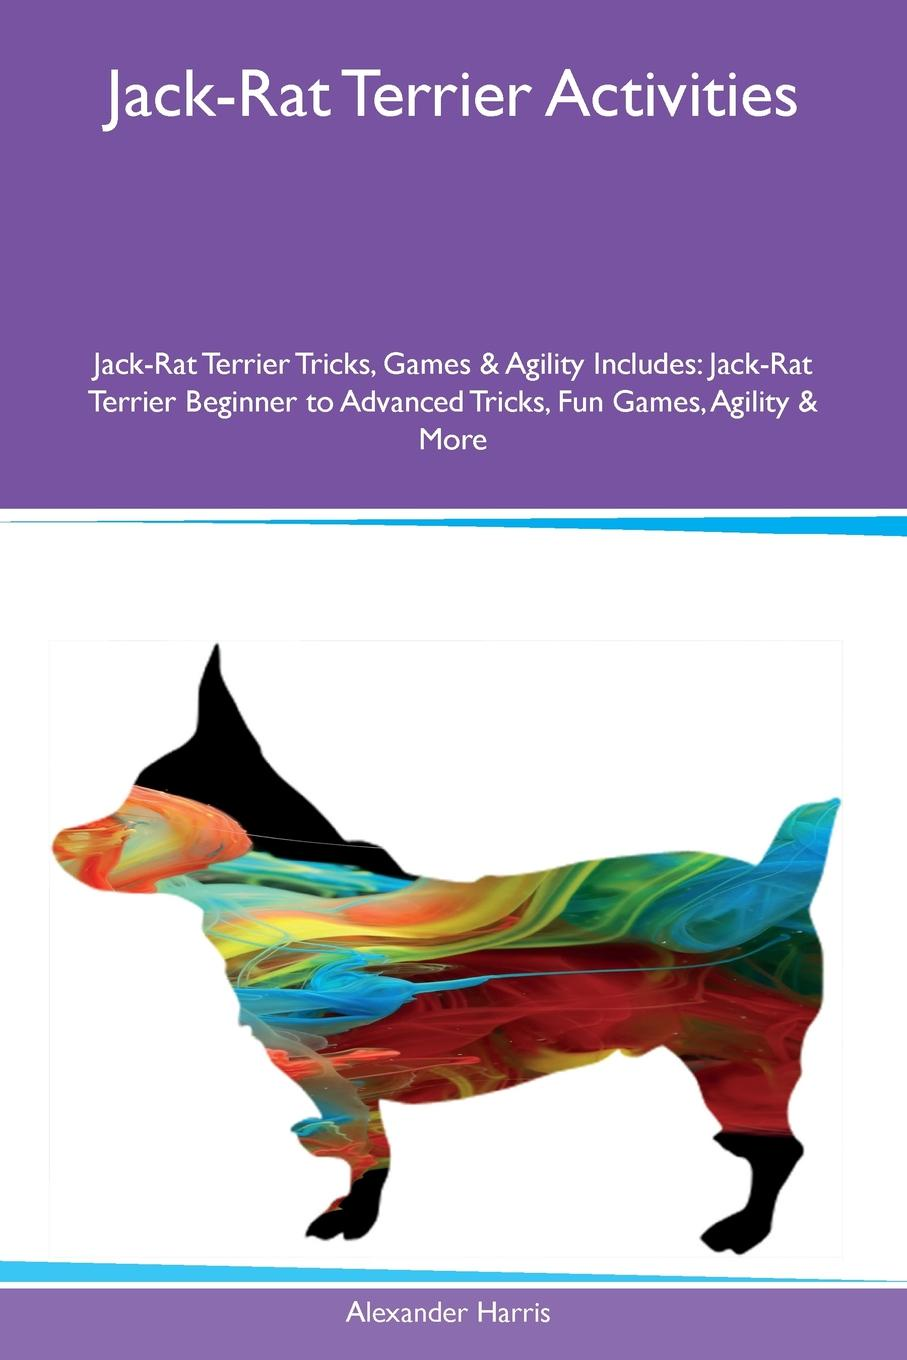 Alexander Harris Jack-Rat Terrier Activities Jack-Rat Terrier Tricks, Games & Agility Includes. Jack-Rat Terrier Beginner to Advanced Tricks, Fun Games, Agility & More the rat brain in stereotaxic coordinates